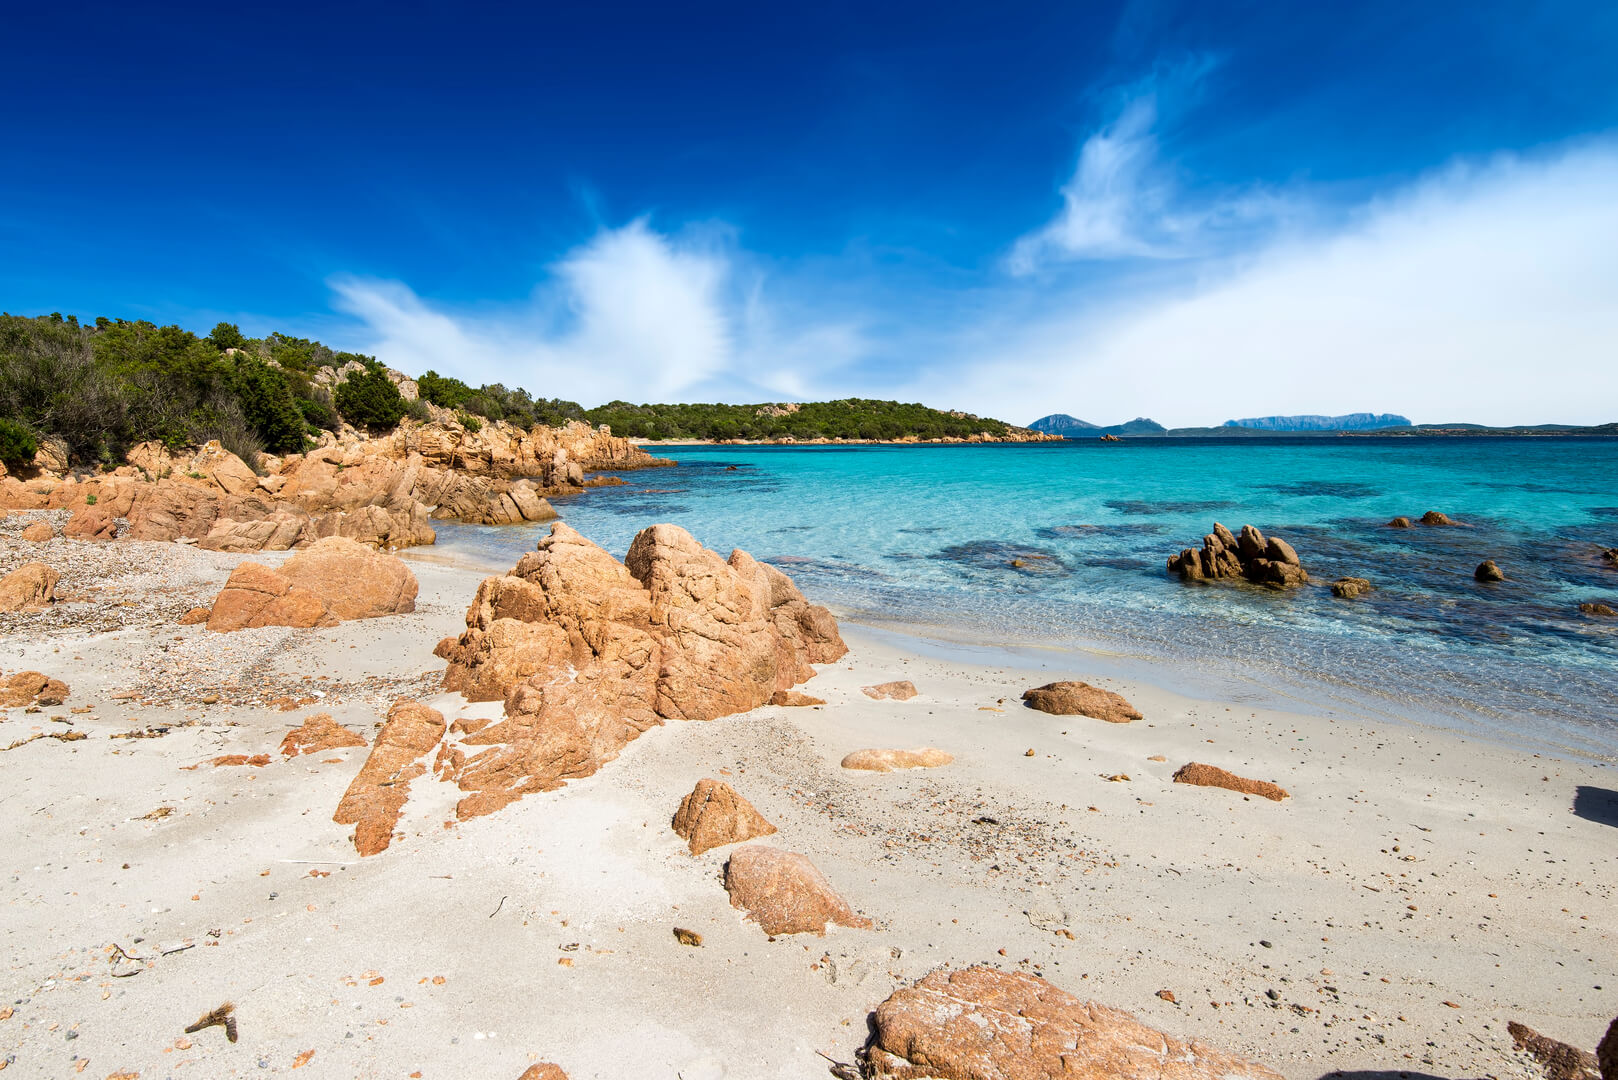 The beautiful turquoise and crystal clear sea on the beach of Petra Ruja - Costa Smeralda, Olbia / Tempio - Sardinia - Italy